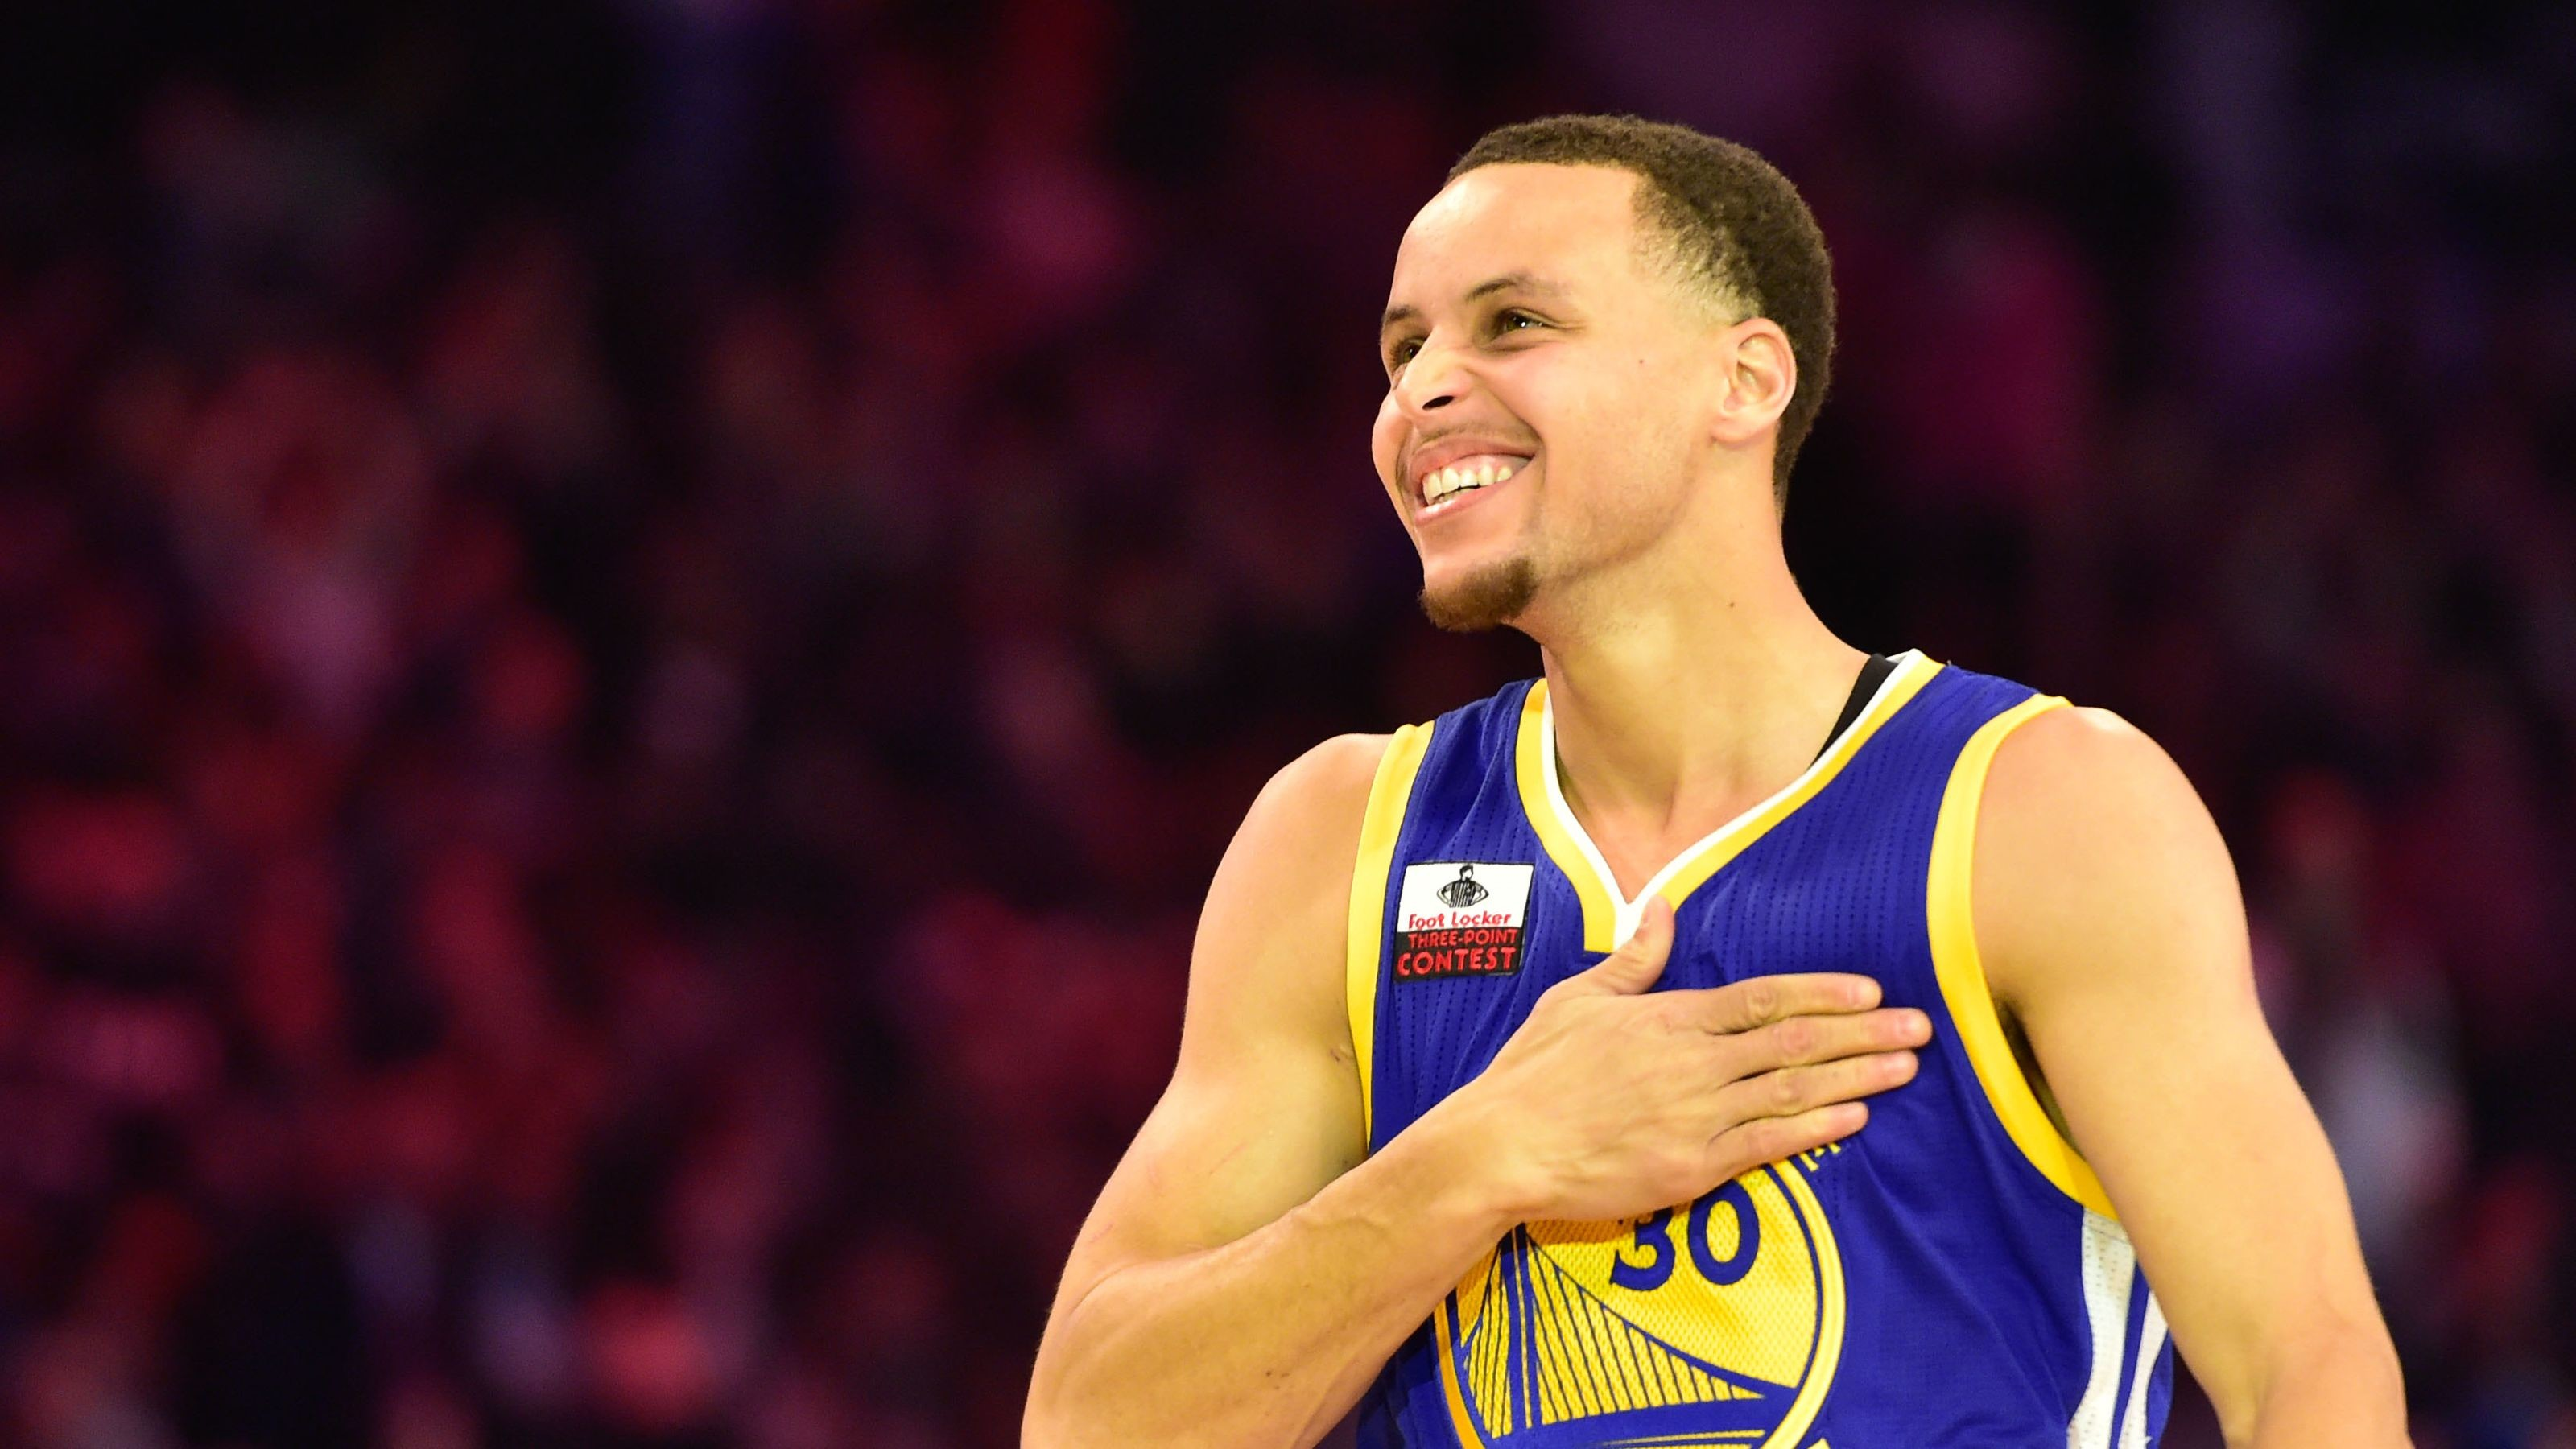 Res: 3200x1800, Stephen Curry and the top seeded Golden State Warriors now know their  opponent in the Western